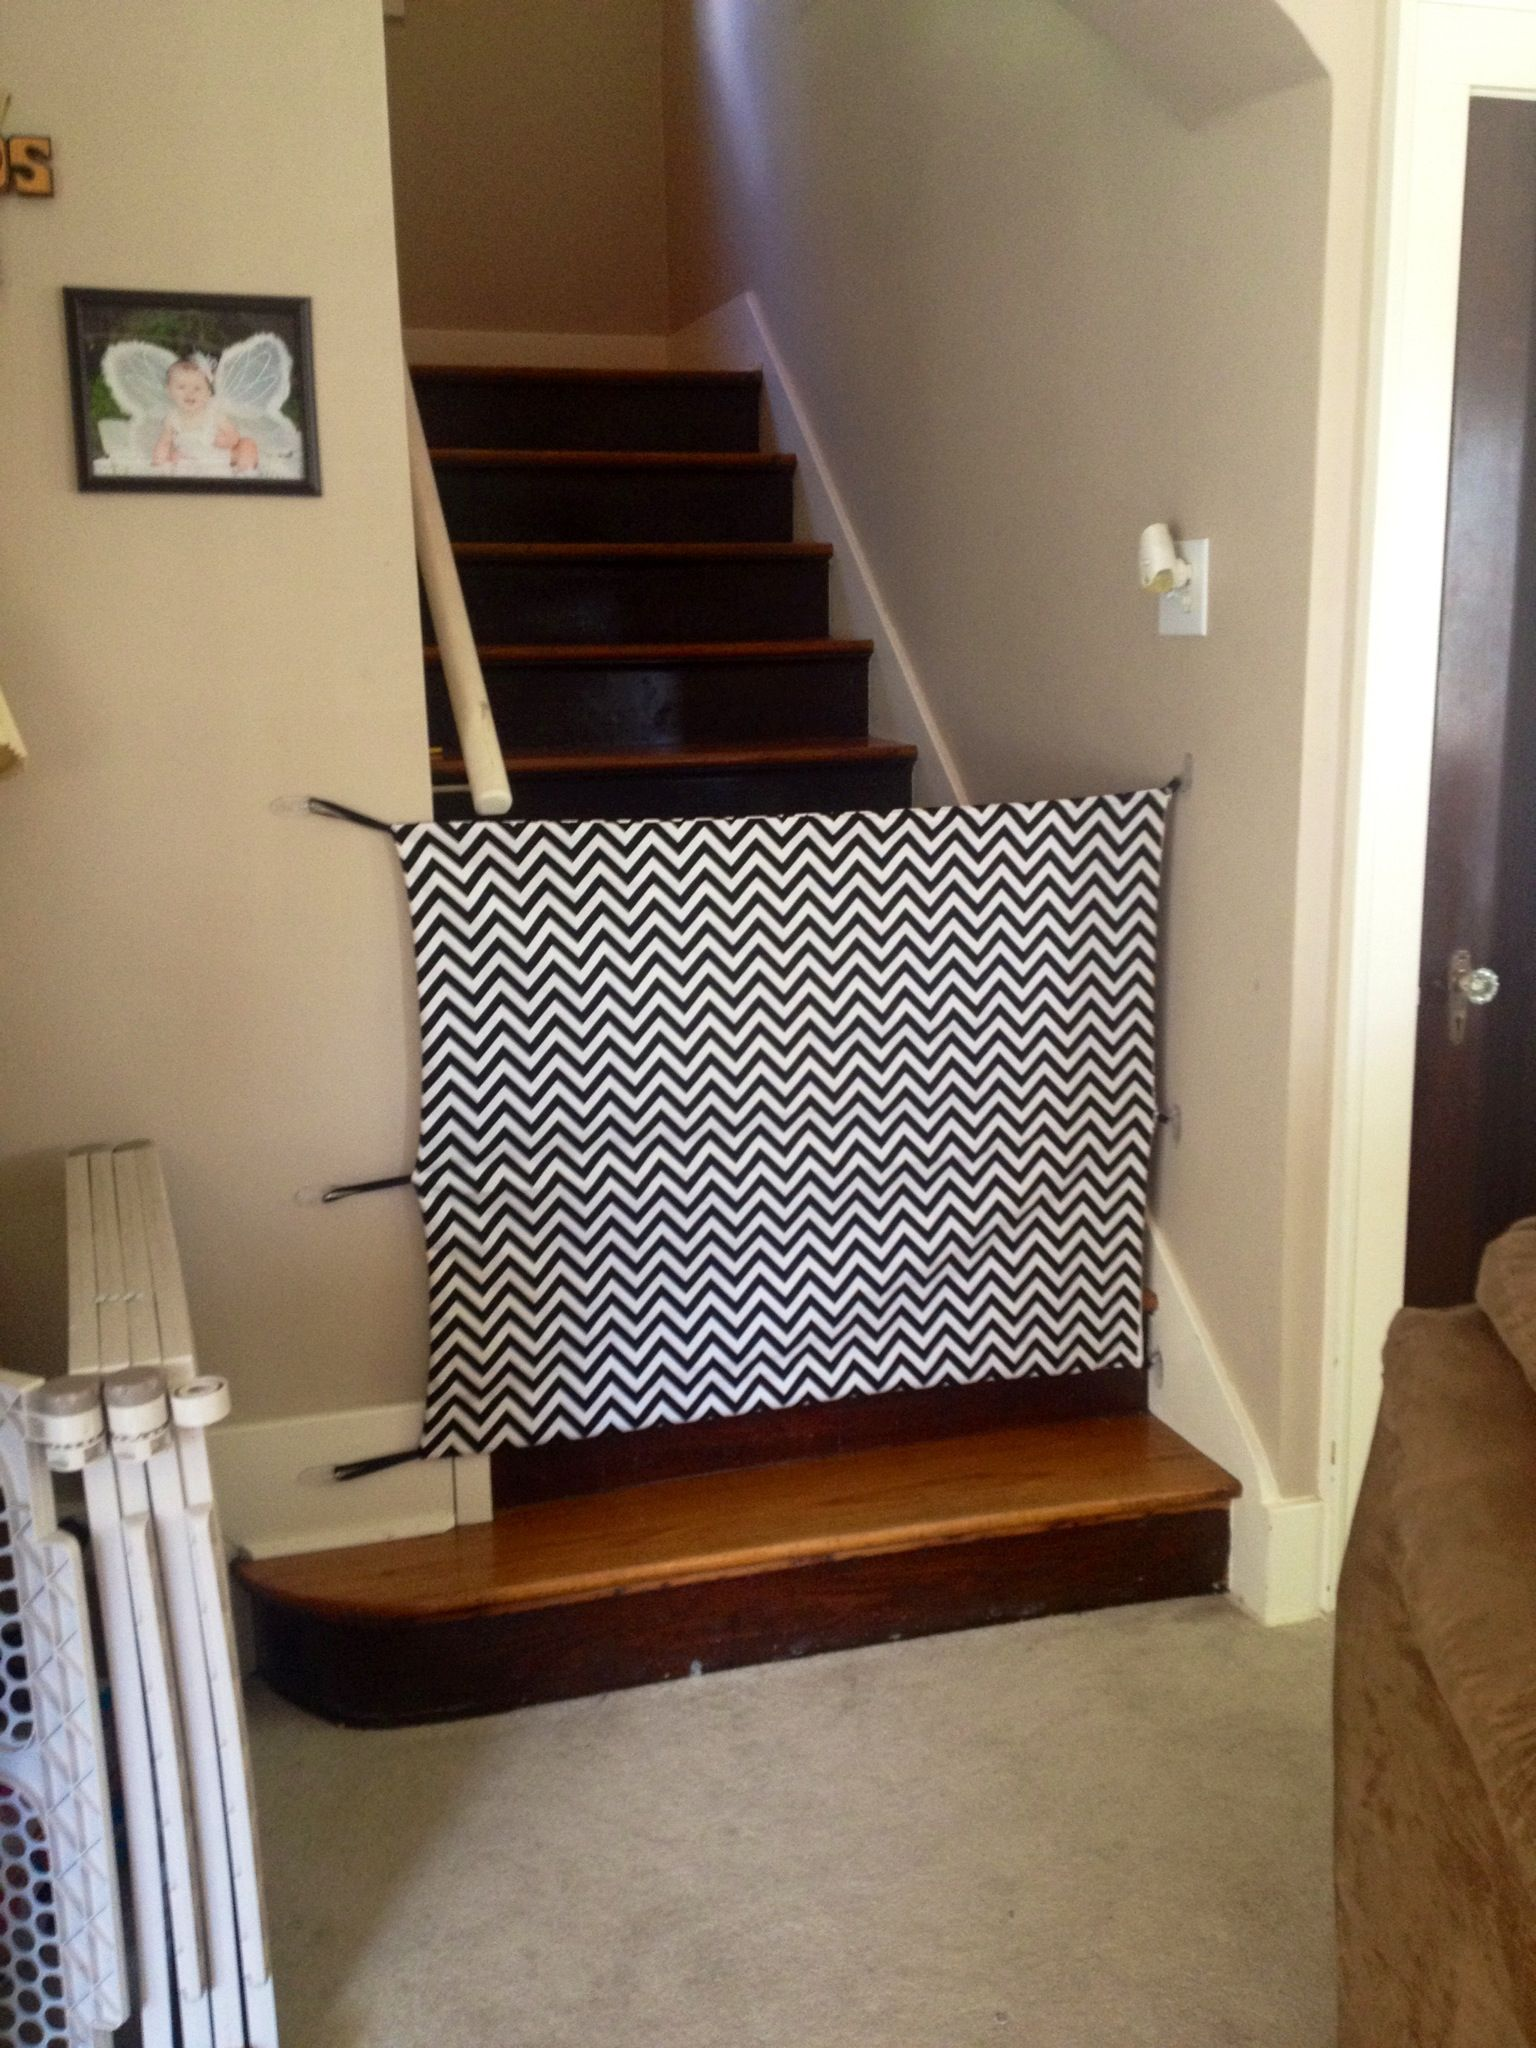 DIY fabric baby gate. Cost around 30 total and it looks